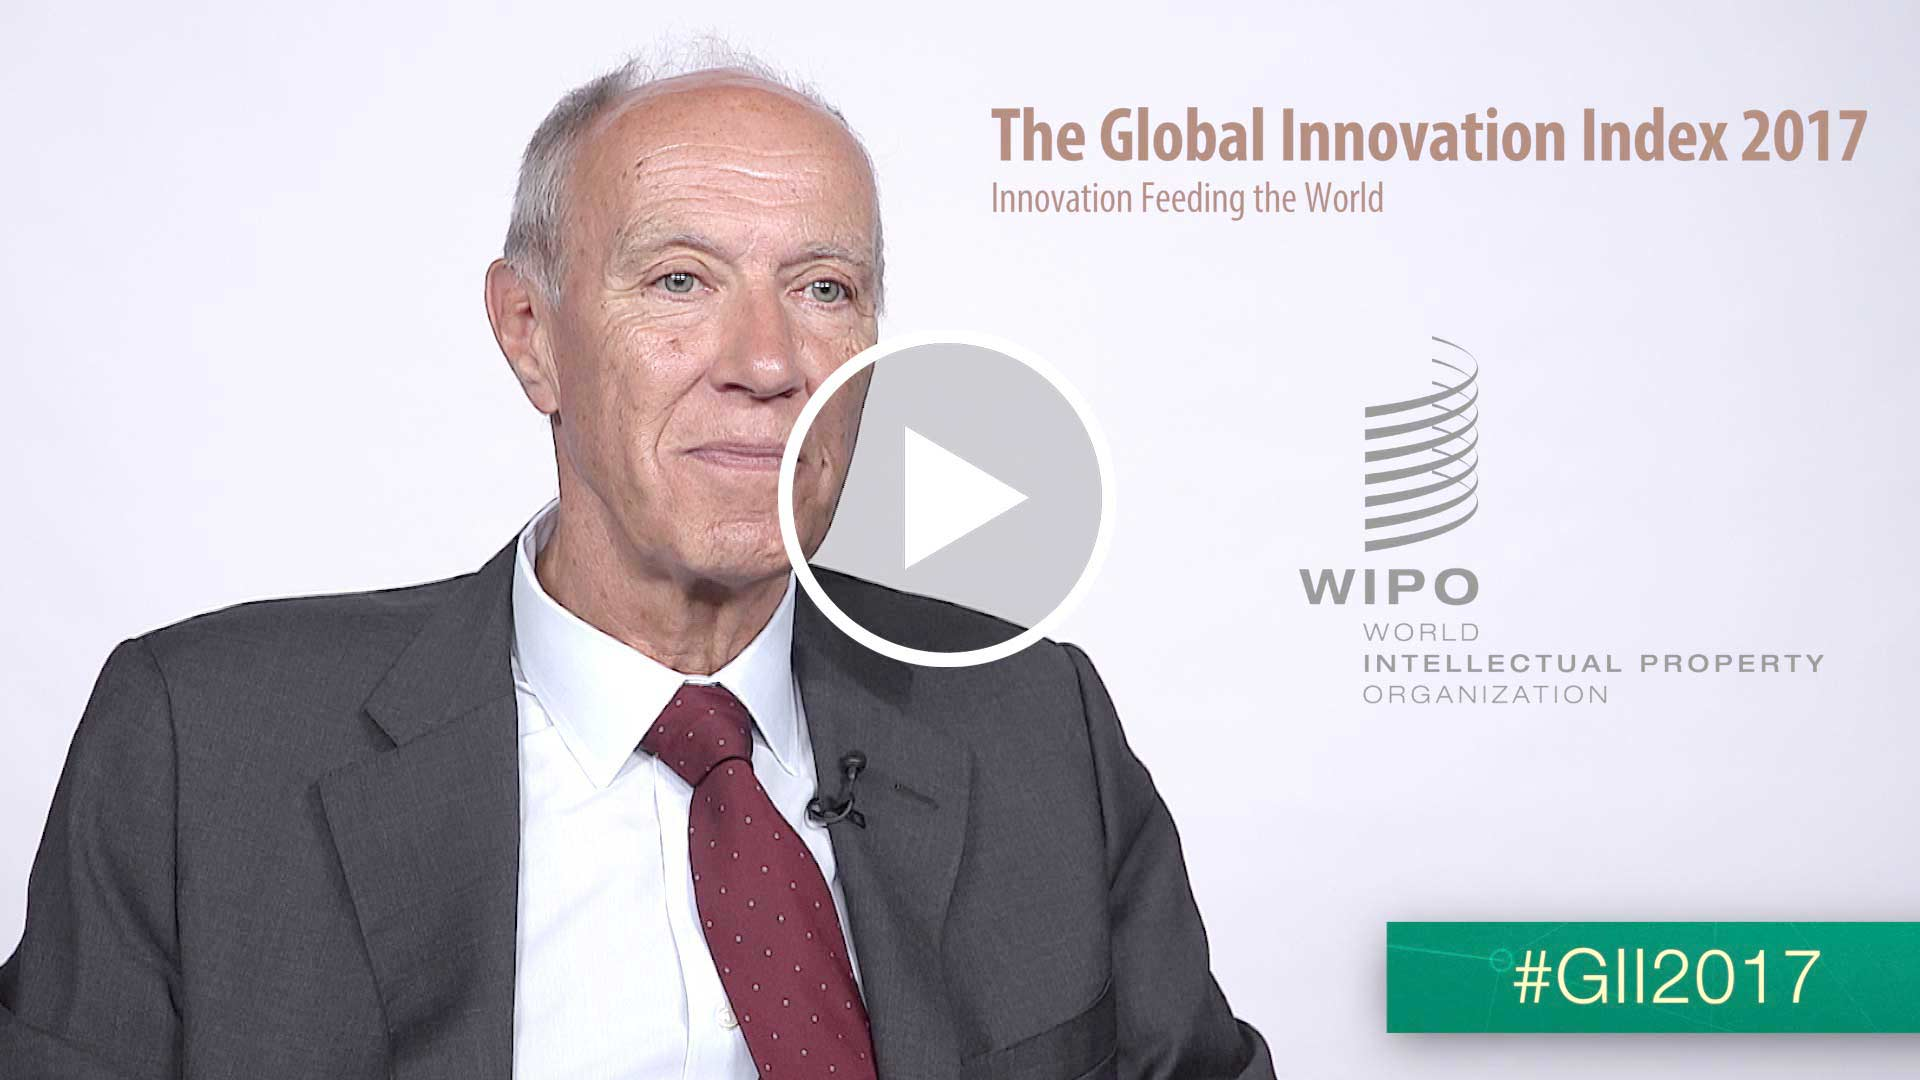 Francis Gurry, WIPO Director General